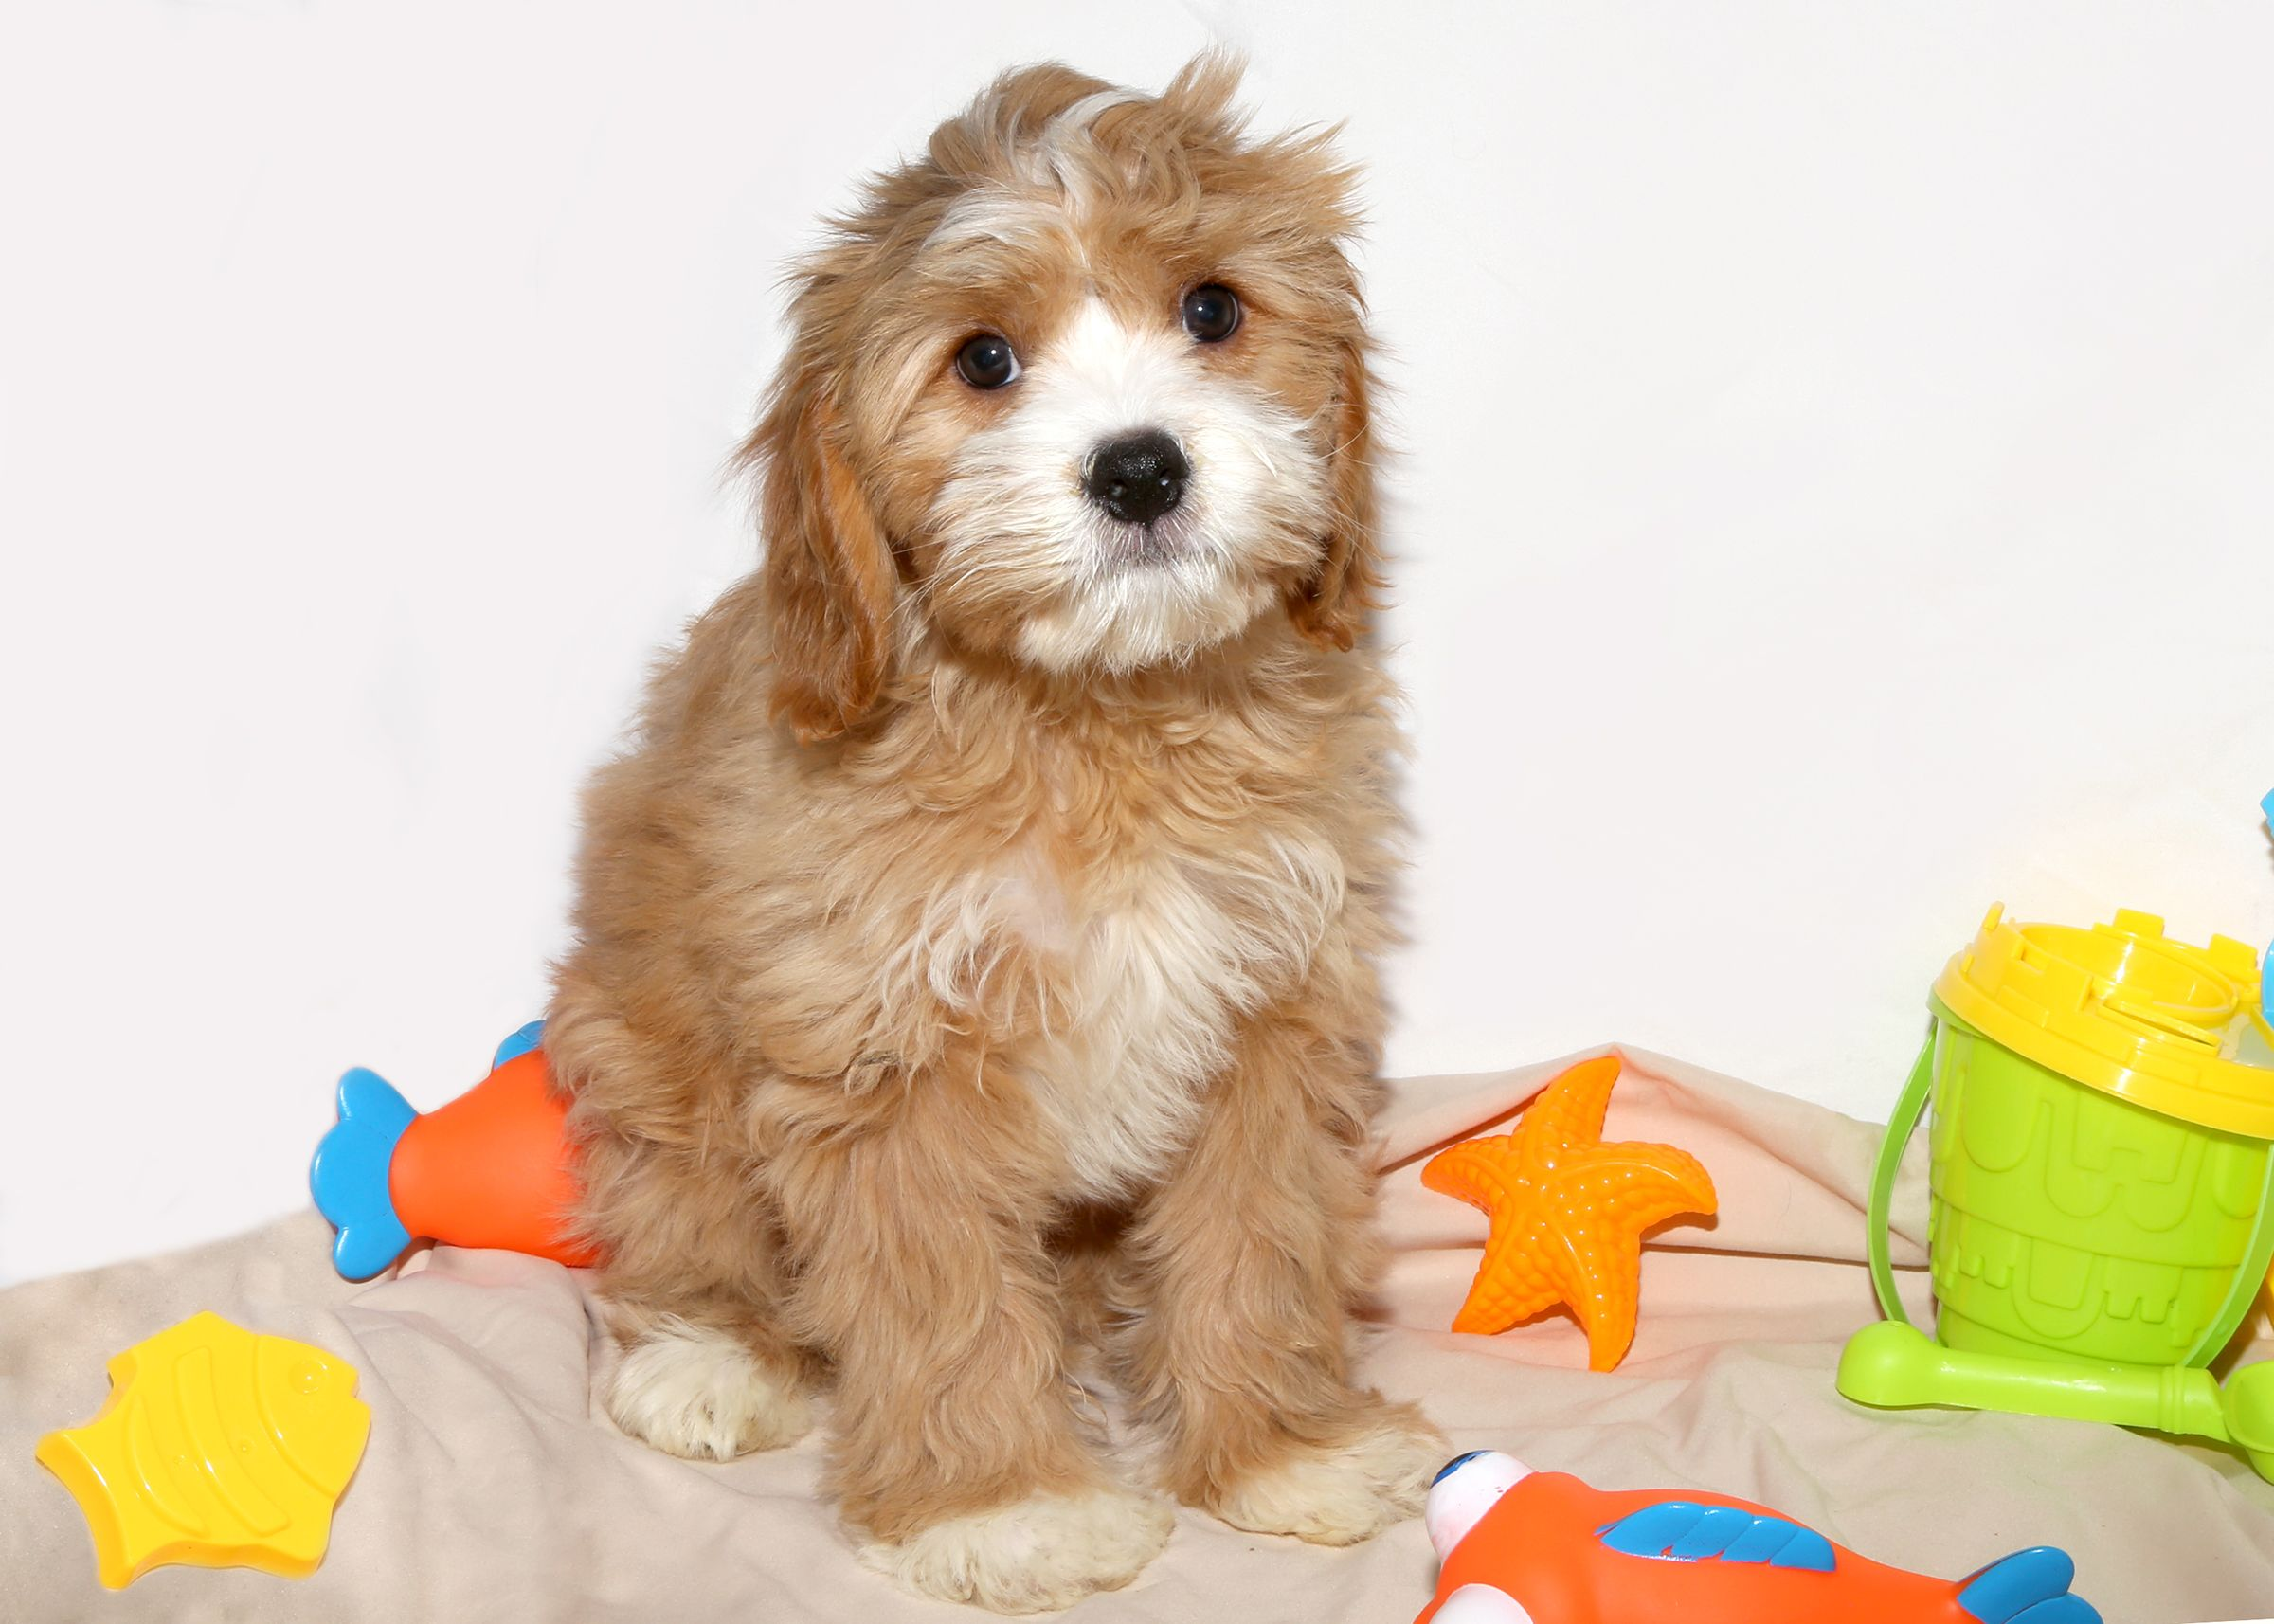 Cavachon puppy, one of two brothers, for sale at Puppy